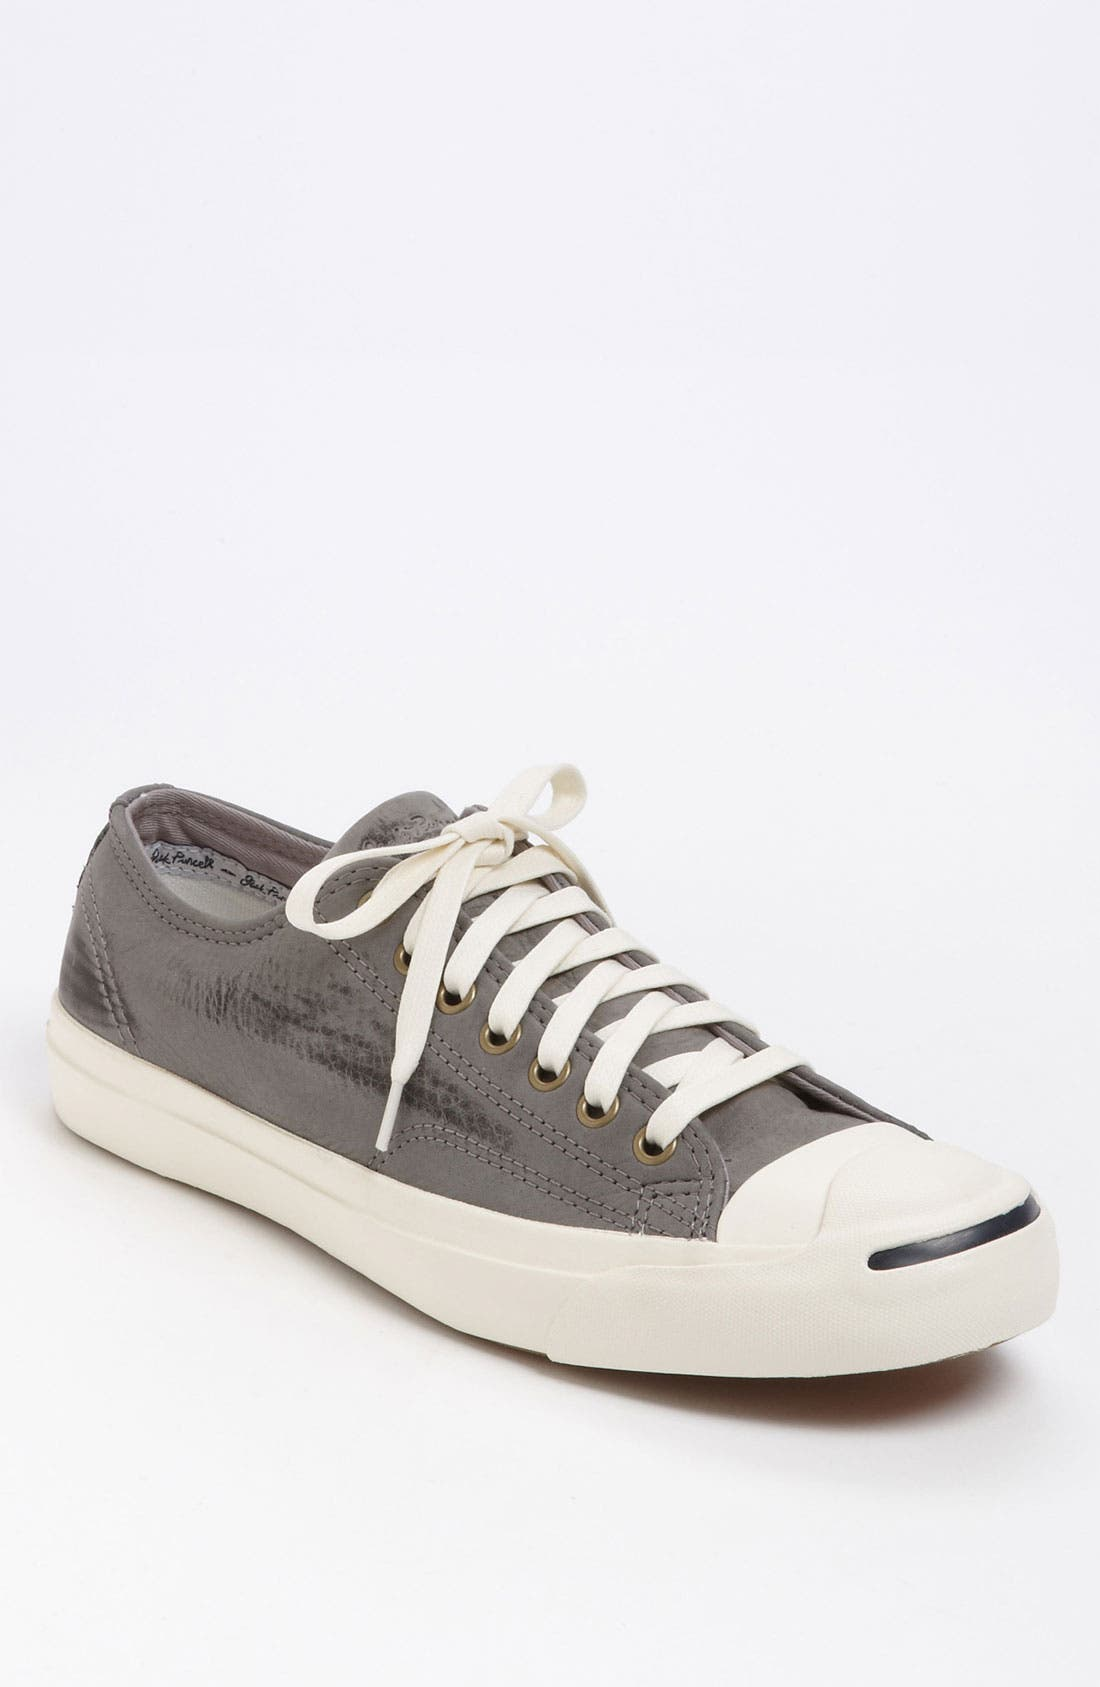 Alternate Image 1 Selected - Converse 'Jack Purcell LTT' Leather Sneaker (Men)